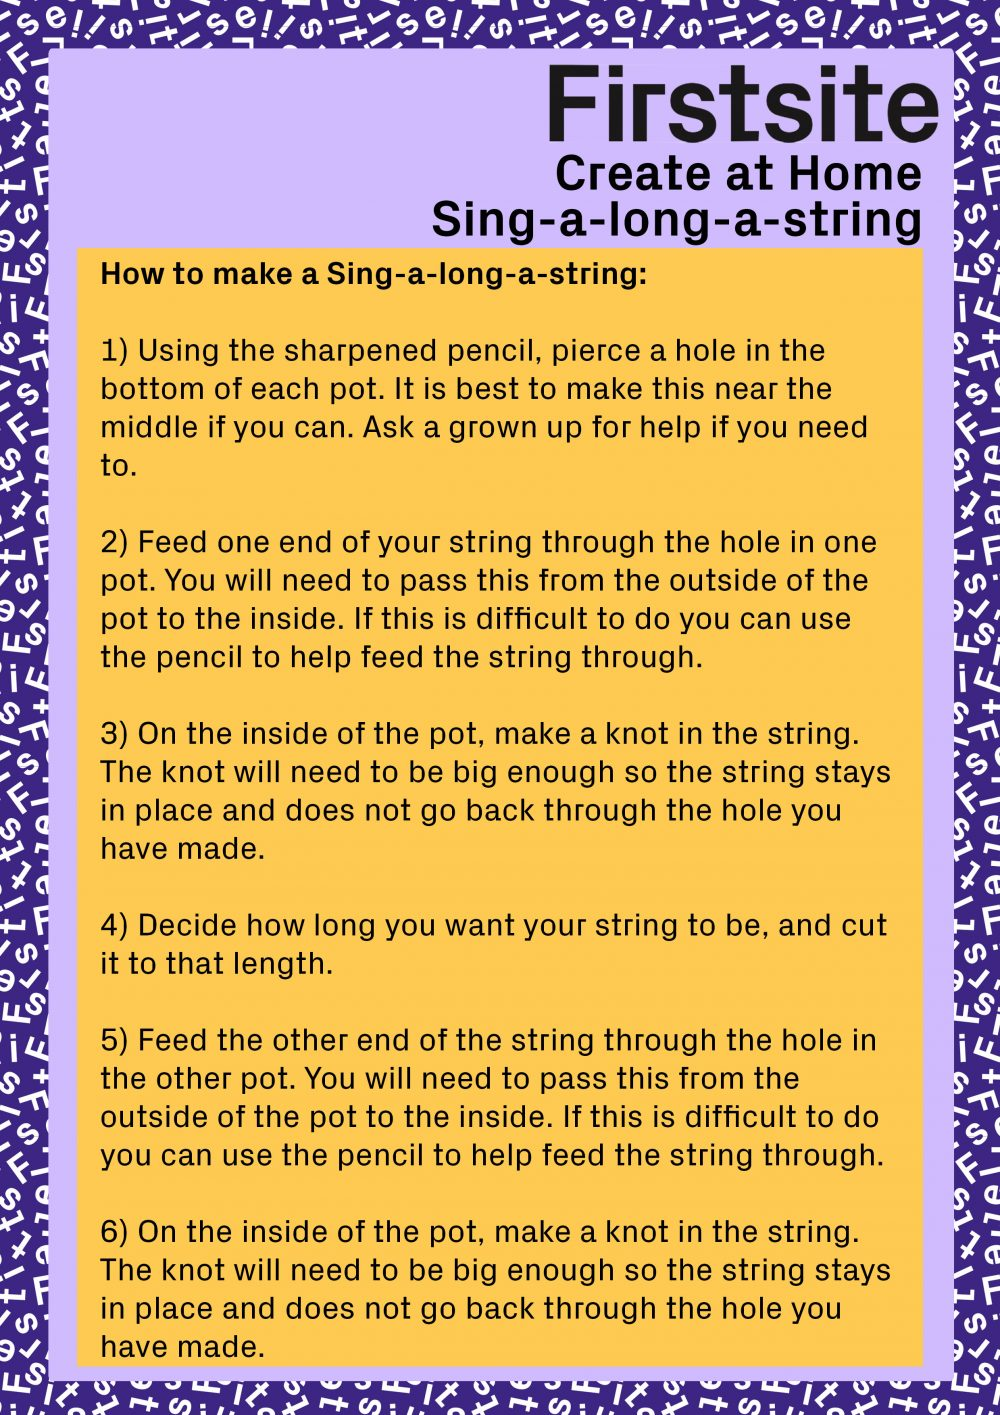 Firstsite Create at Home - Sing along a string instructions page 2 of 2